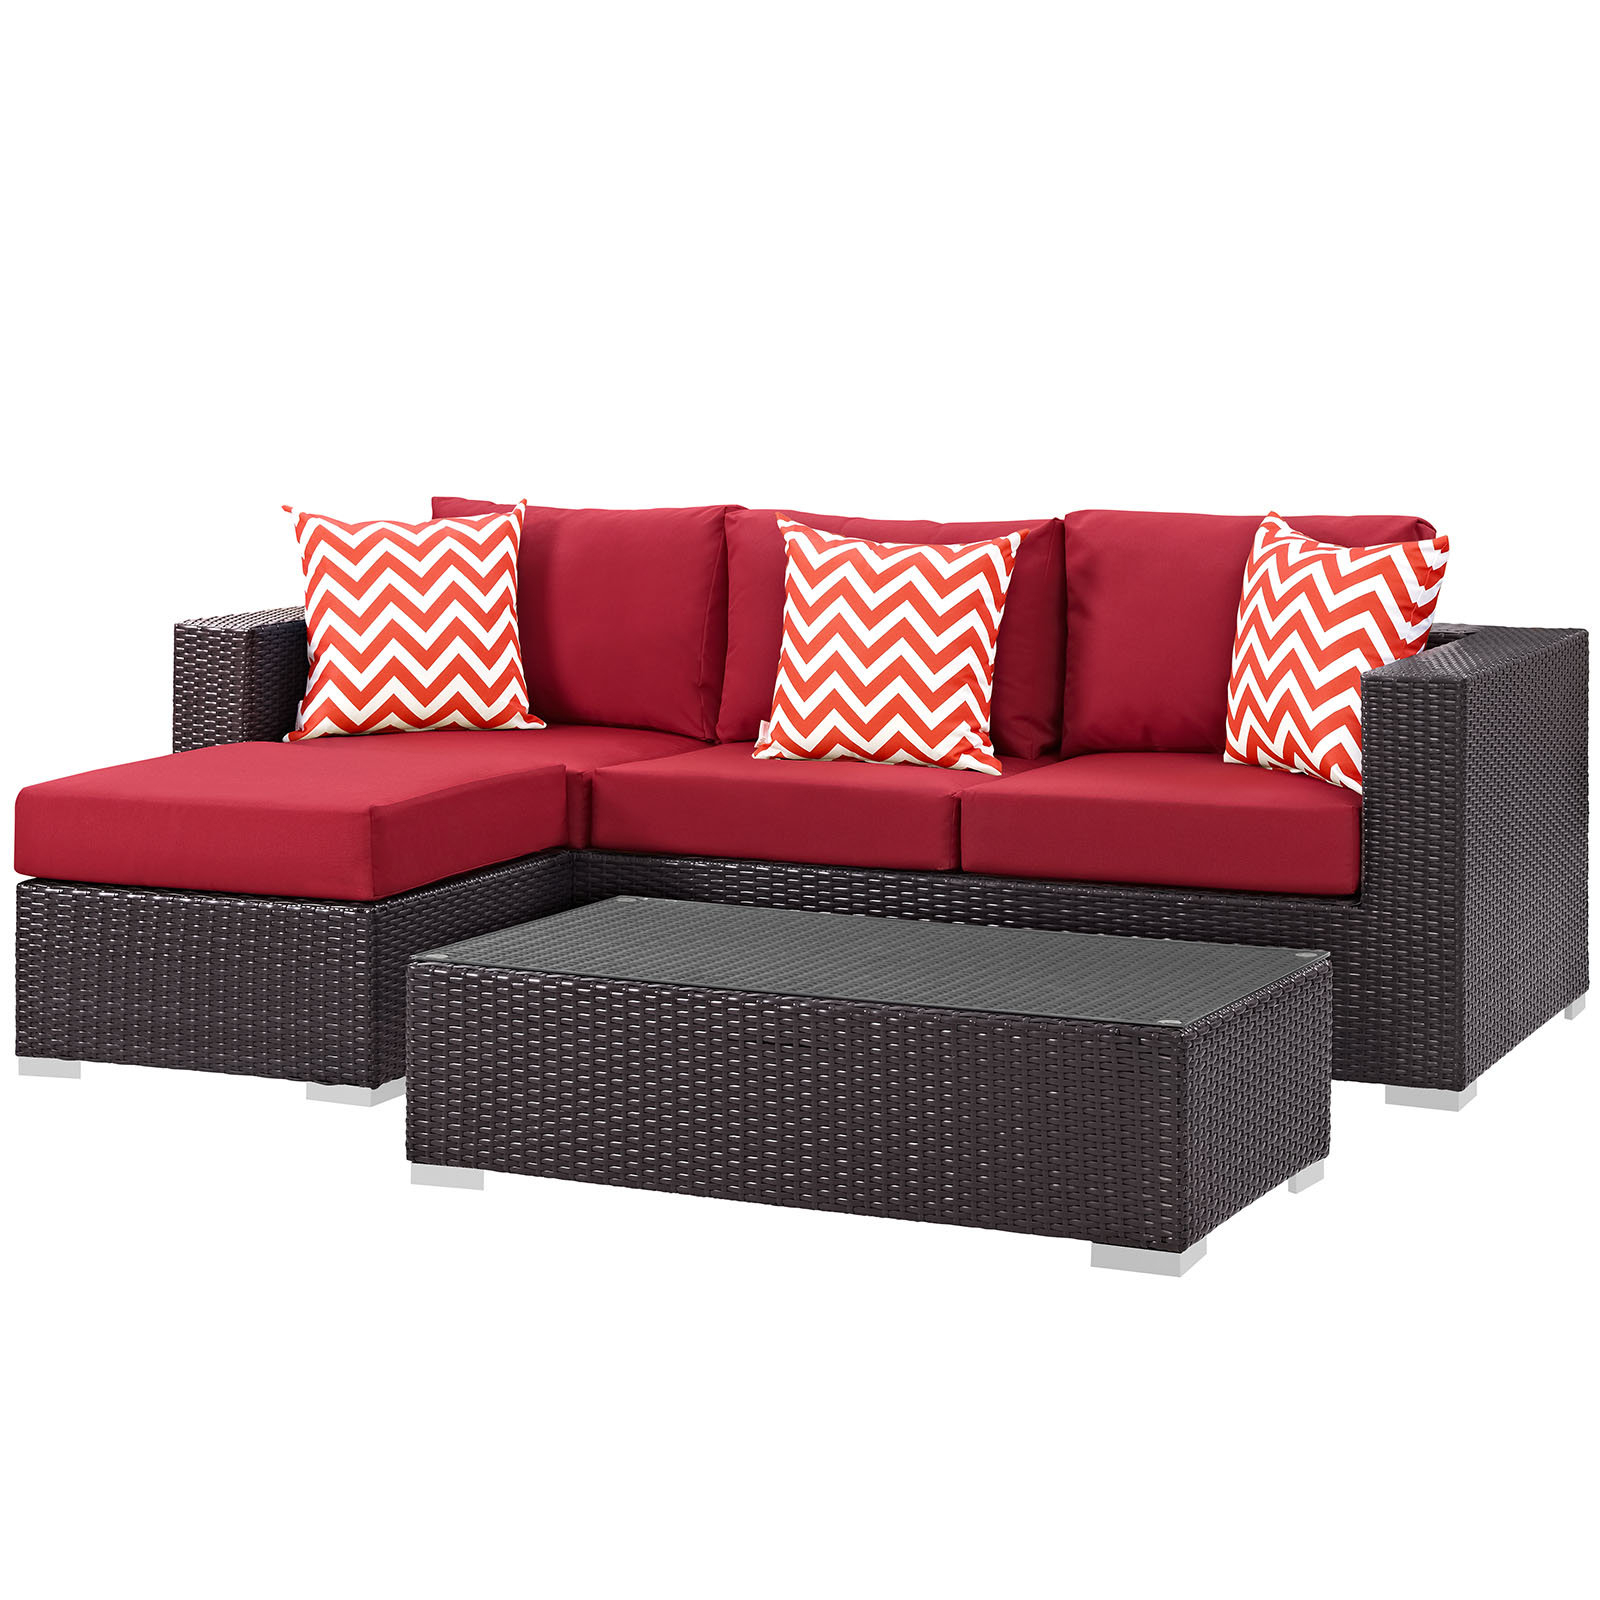 Widely Used Brentwood Patio Sofas With Cushions Inside Brentwood 3 Piece Rattan Sectional Set With Cushions (View 18 of 18)